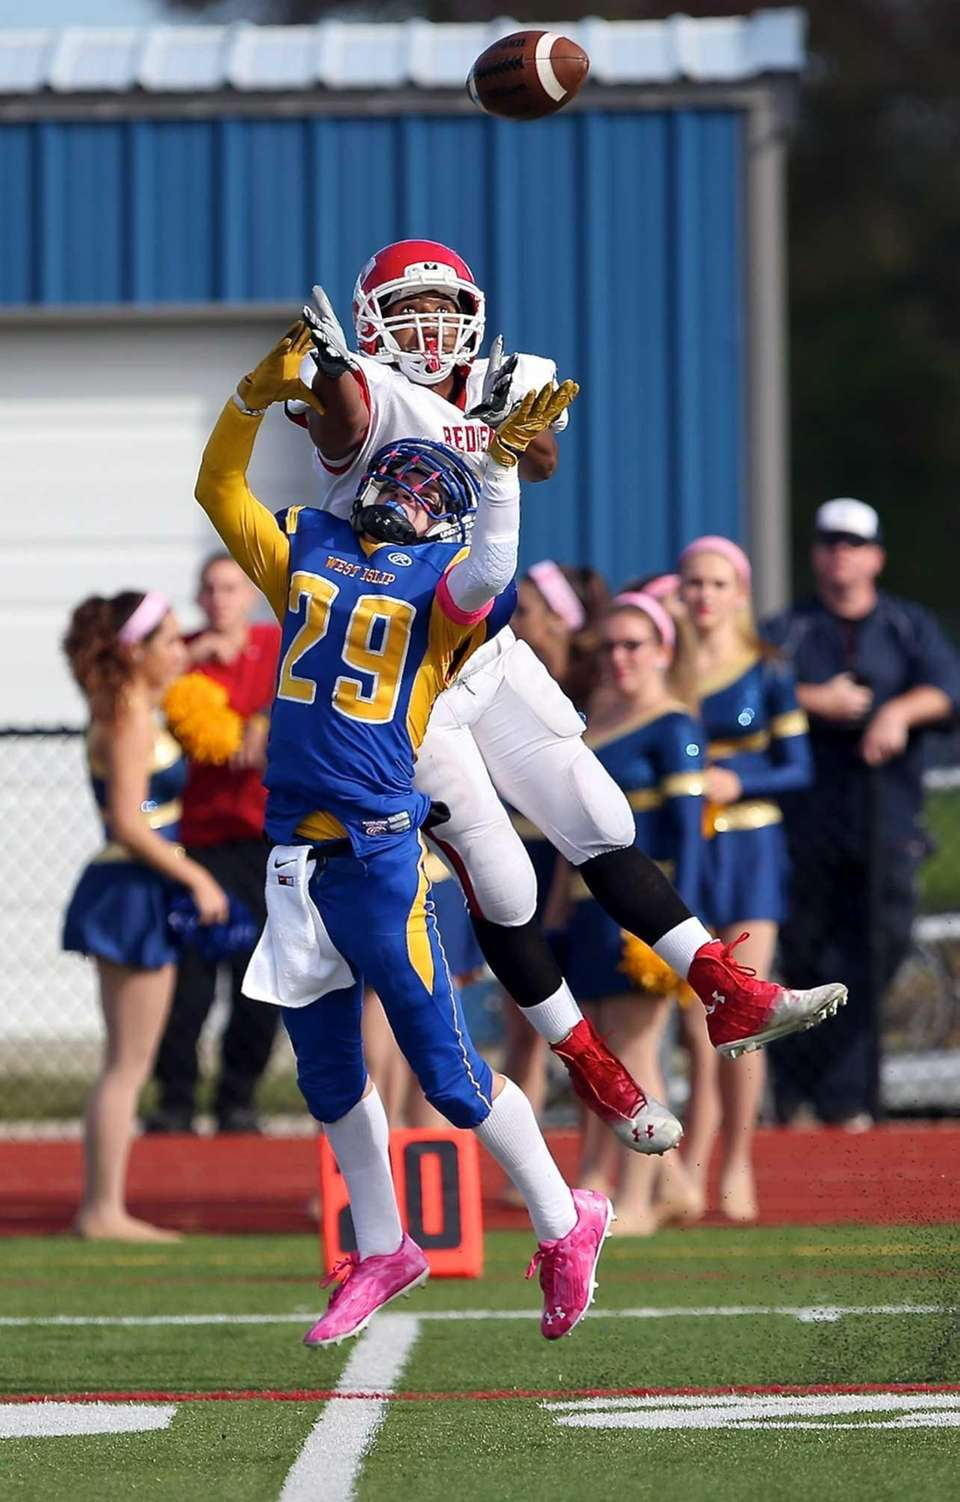 East Islip wide receiver Tranquille Hugens can't grab